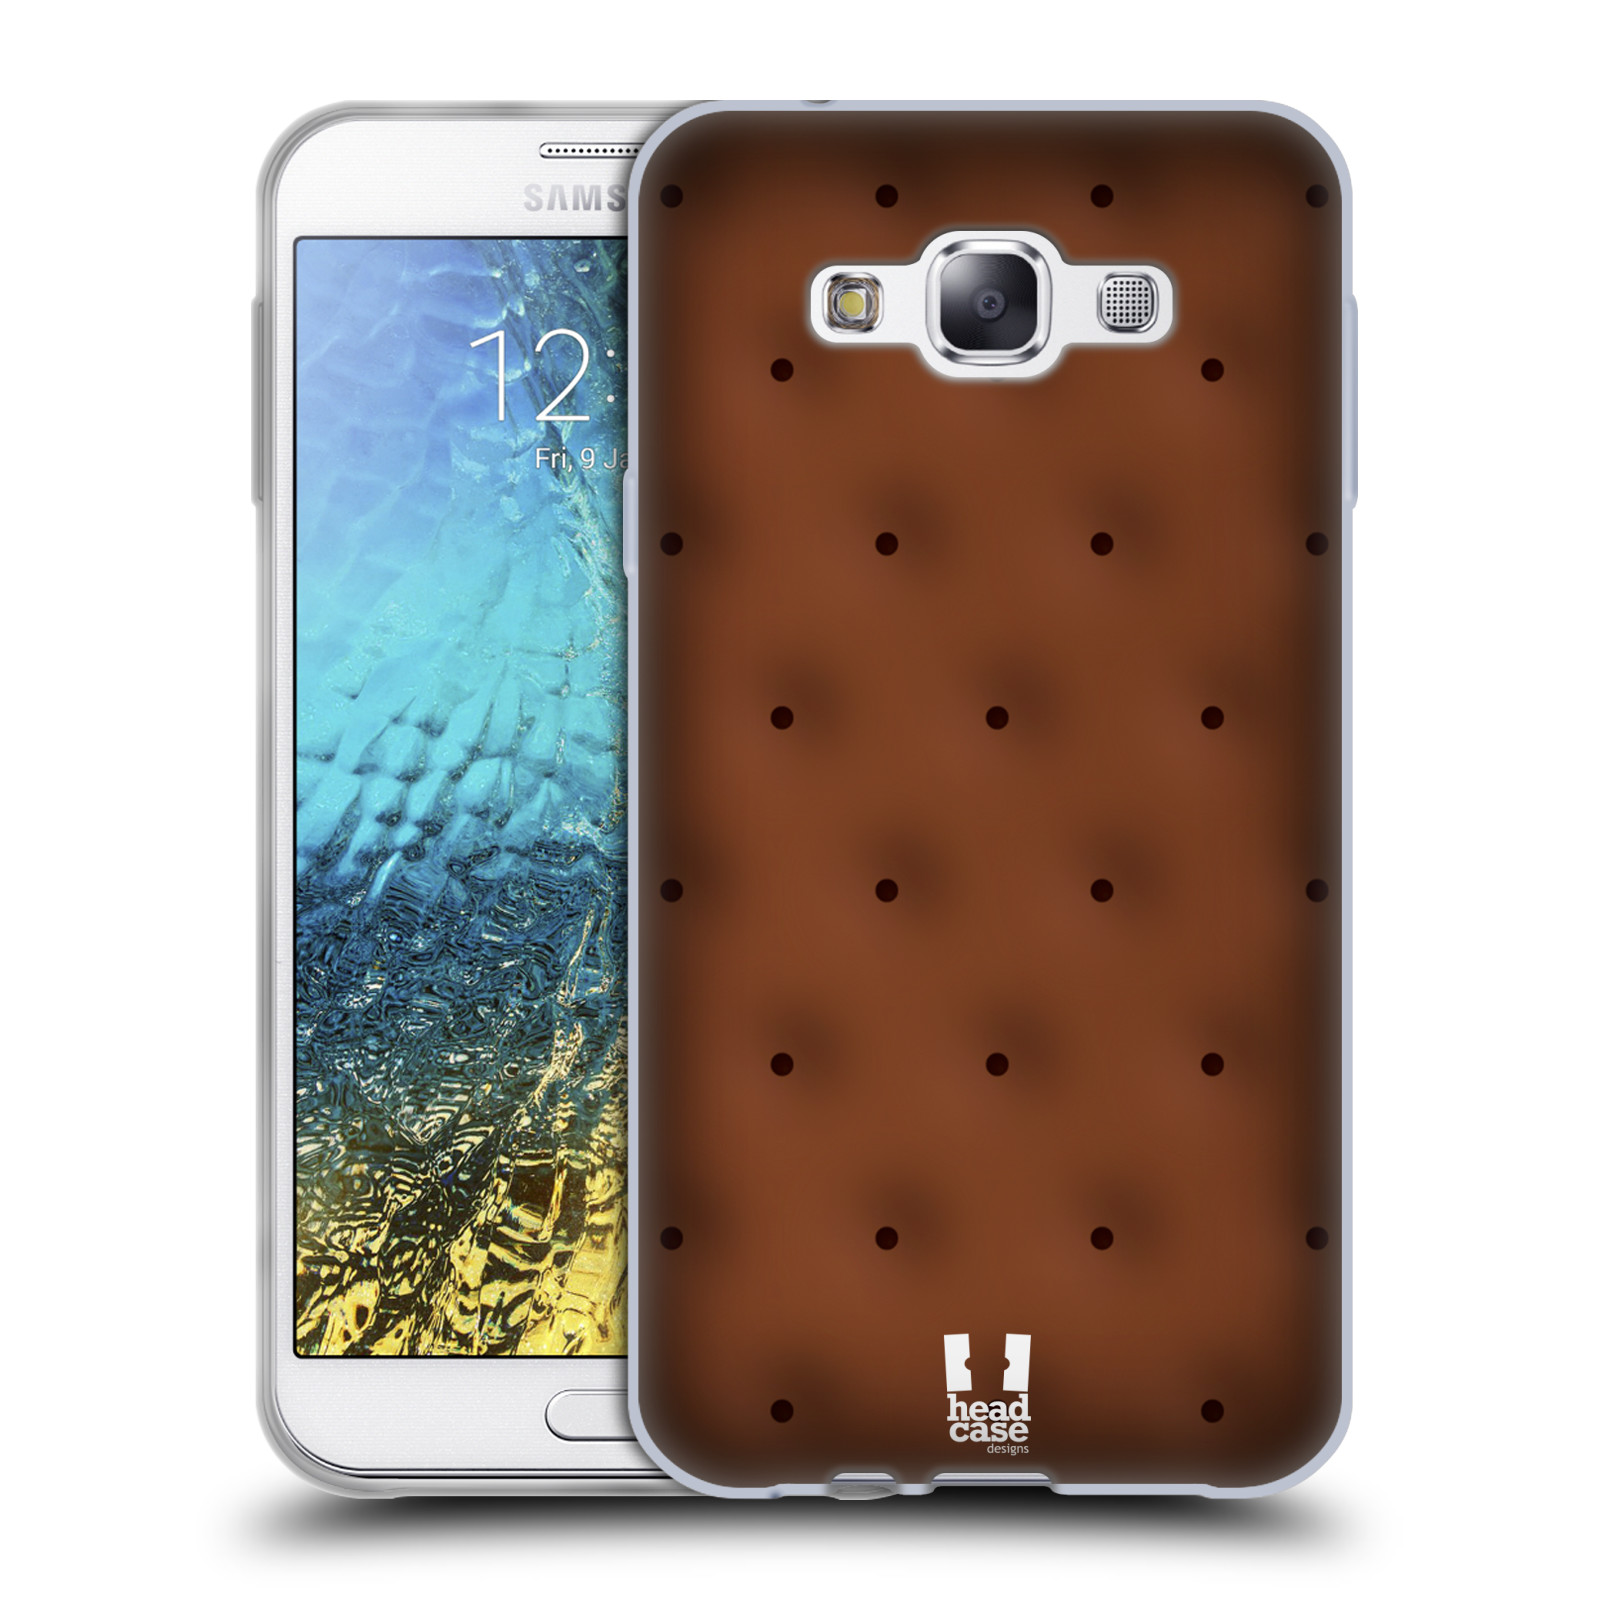 HEAD-CASE-DESIGNS-EISCREME-RIEGEL-SOFT-GEL-HULLE-FUR-SAMSUNG-HANDYS-3